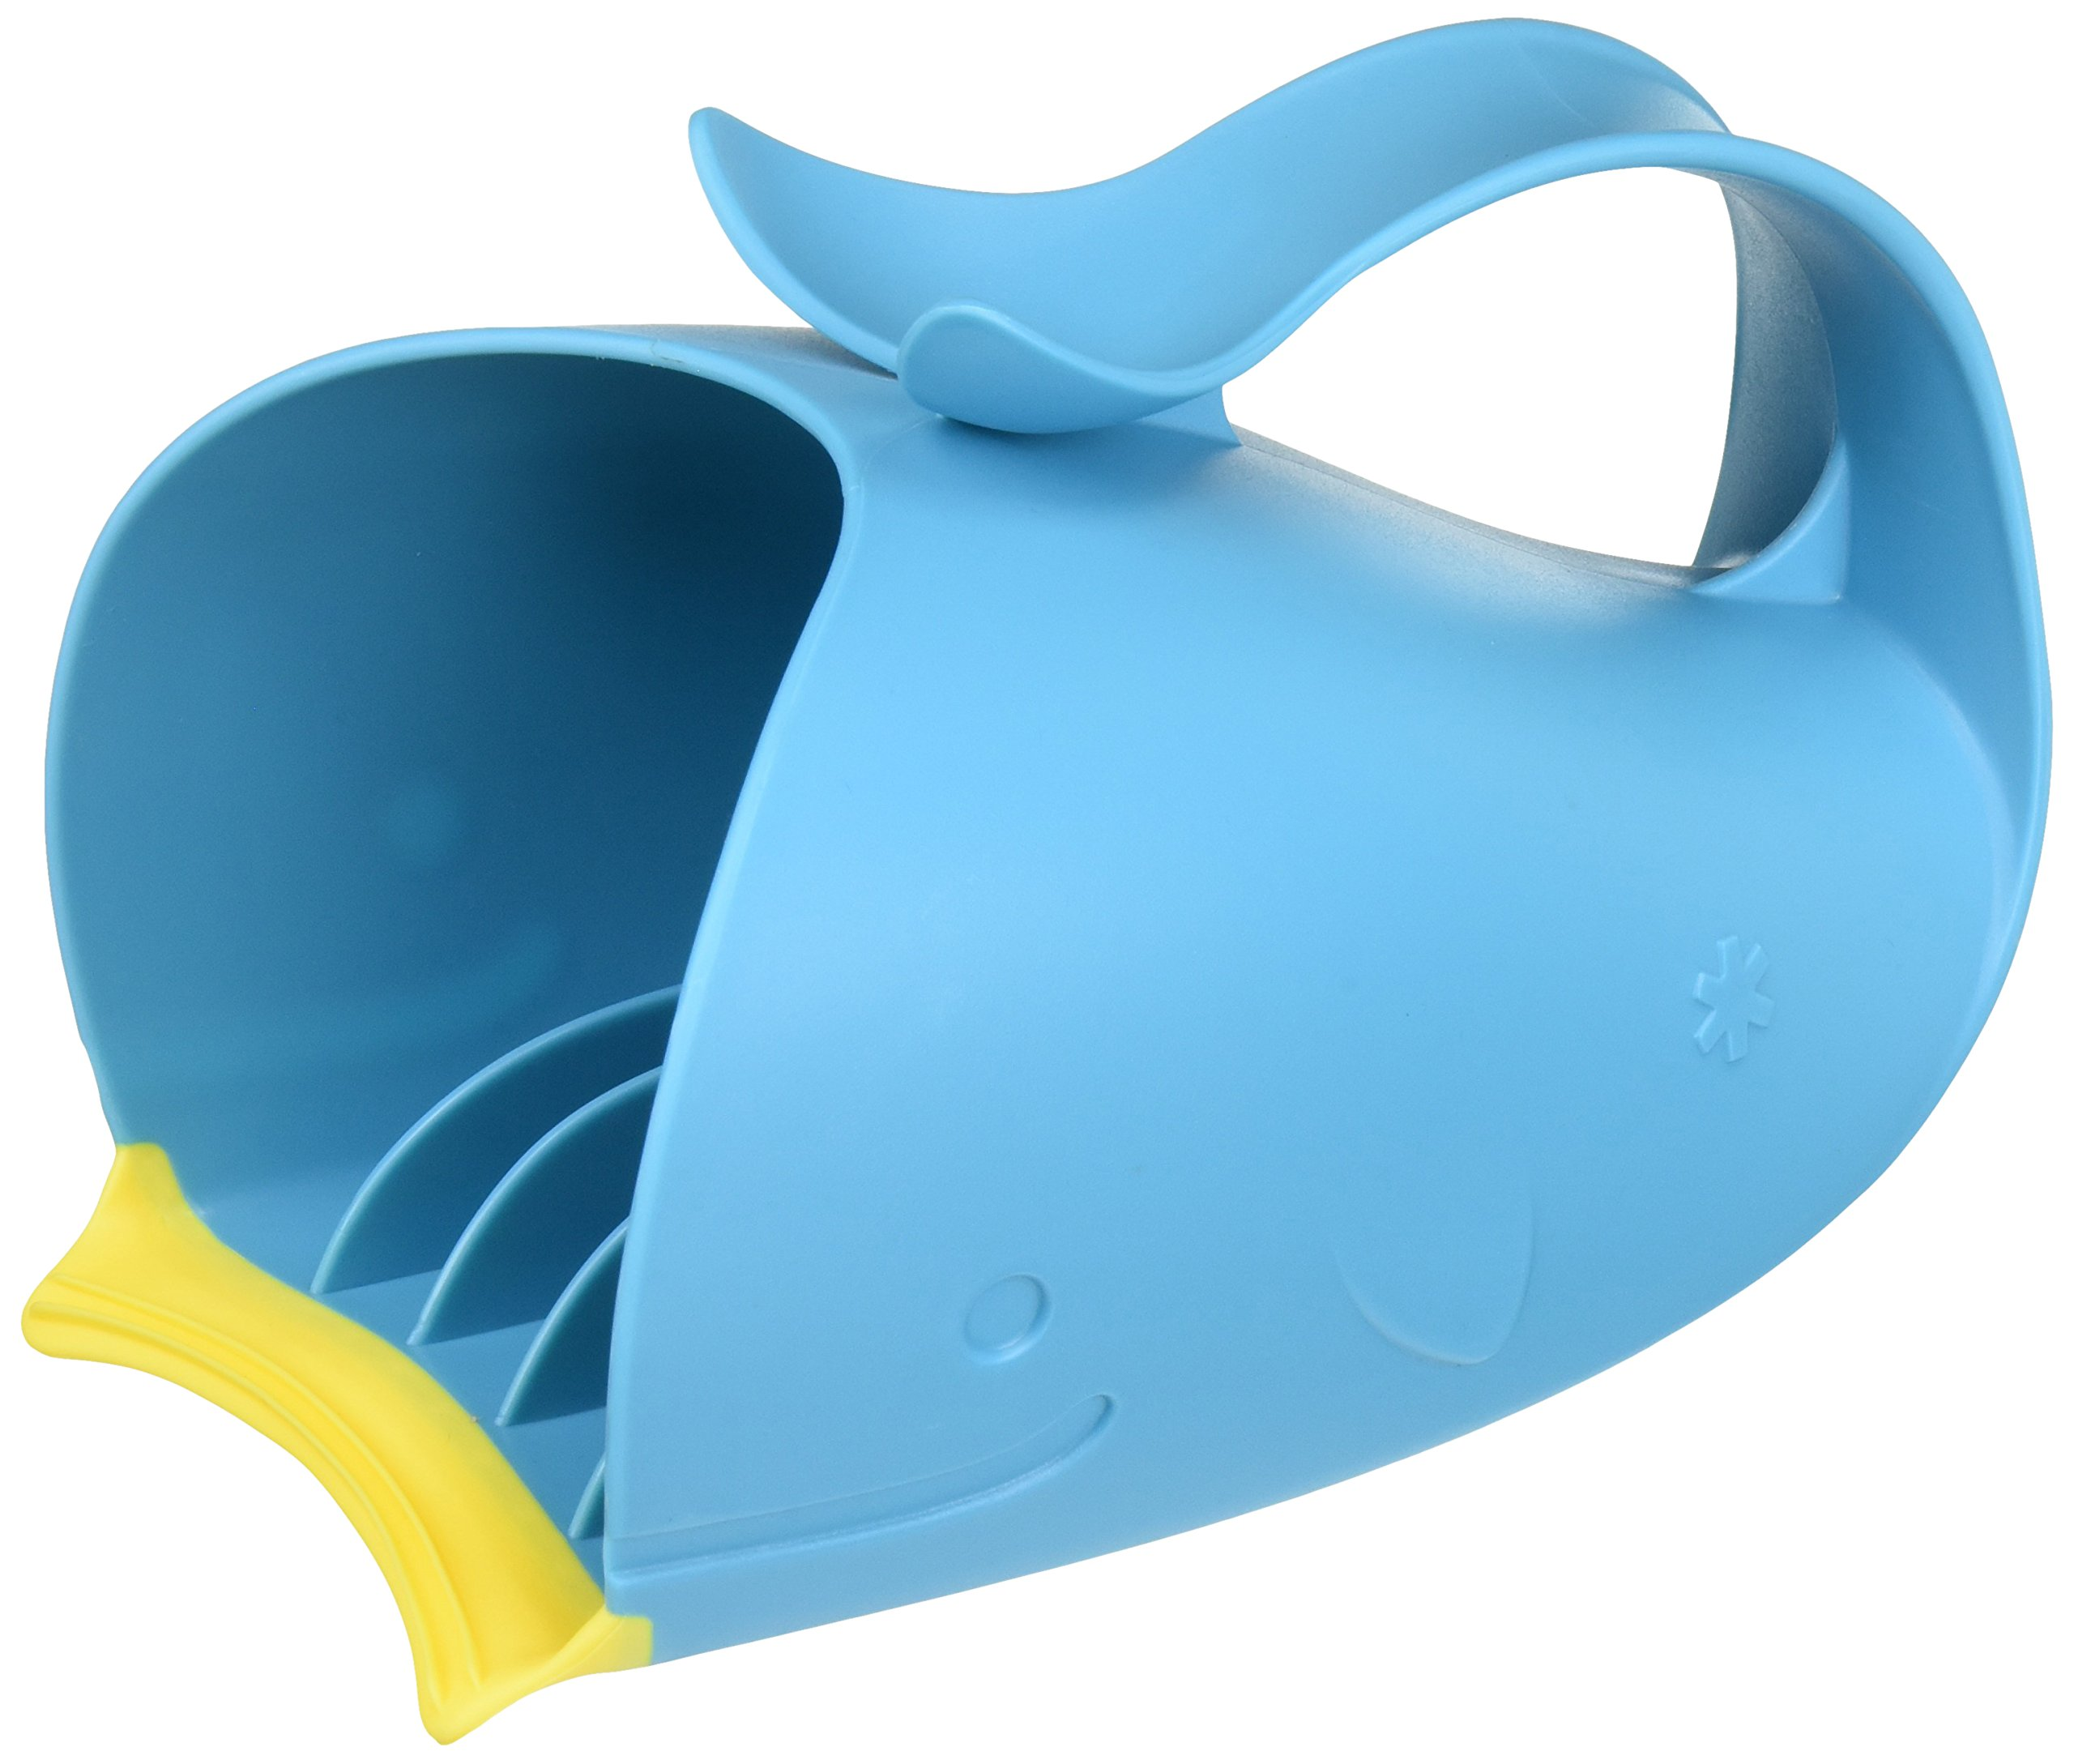 Amazon.com : Skip Hop Moby Bath Spout Cover Universal Fit, Blue ...